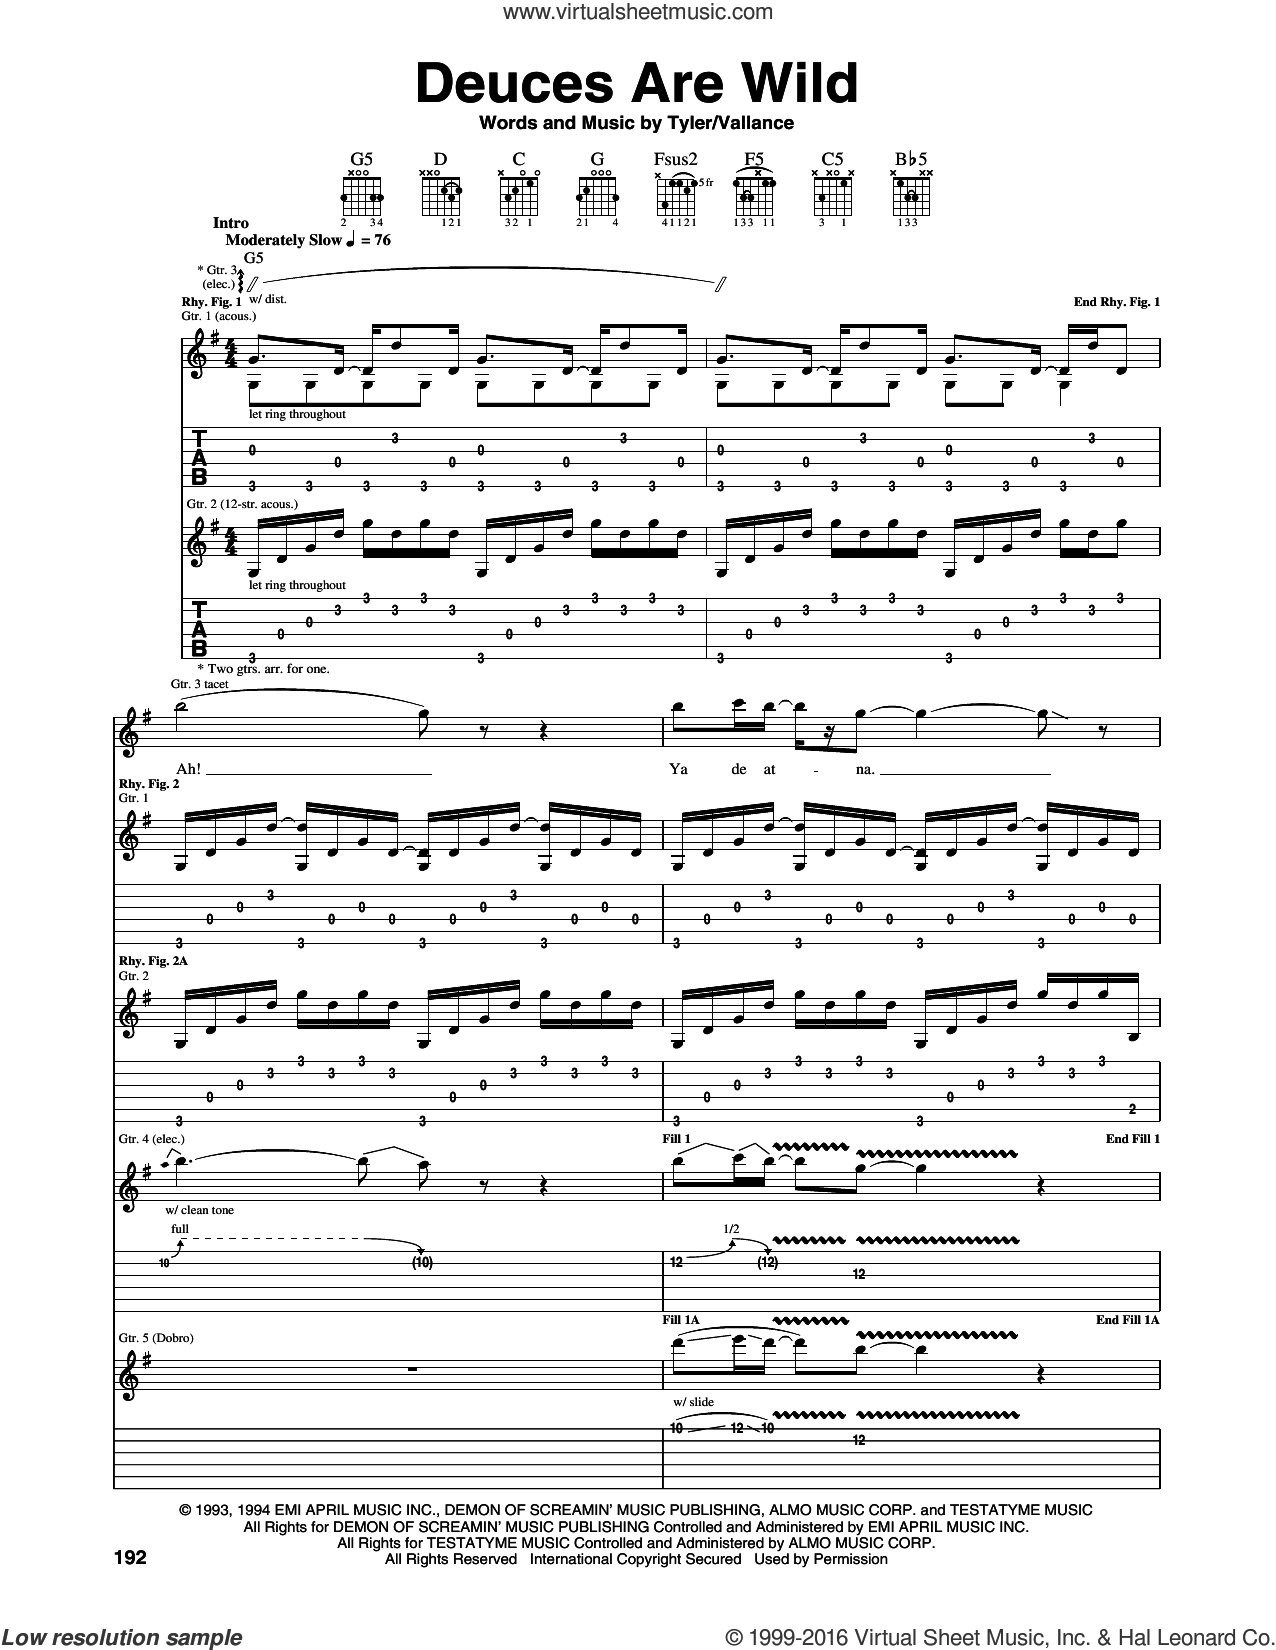 Deuces Are Wild sheet music for guitar (tablature) by Steven Tyler, Aerosmith and Jim Vallance. Score Image Preview.